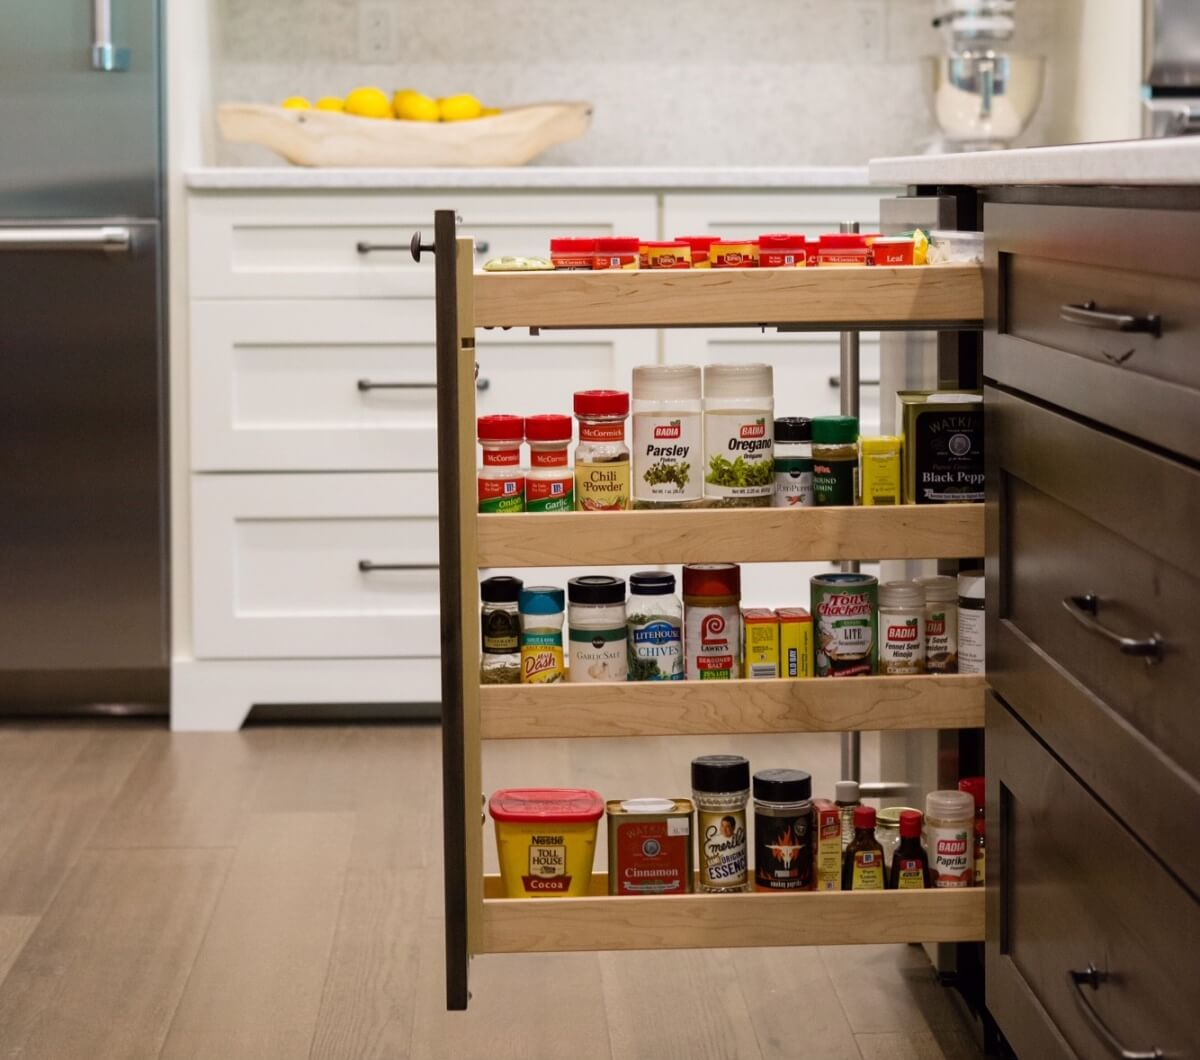 Kitchen Design by Megan Courtney of Cabinet Style, LLC featuring a Base Pull-Out Cabinet with Spice Rack shelves by Dura Supreme.